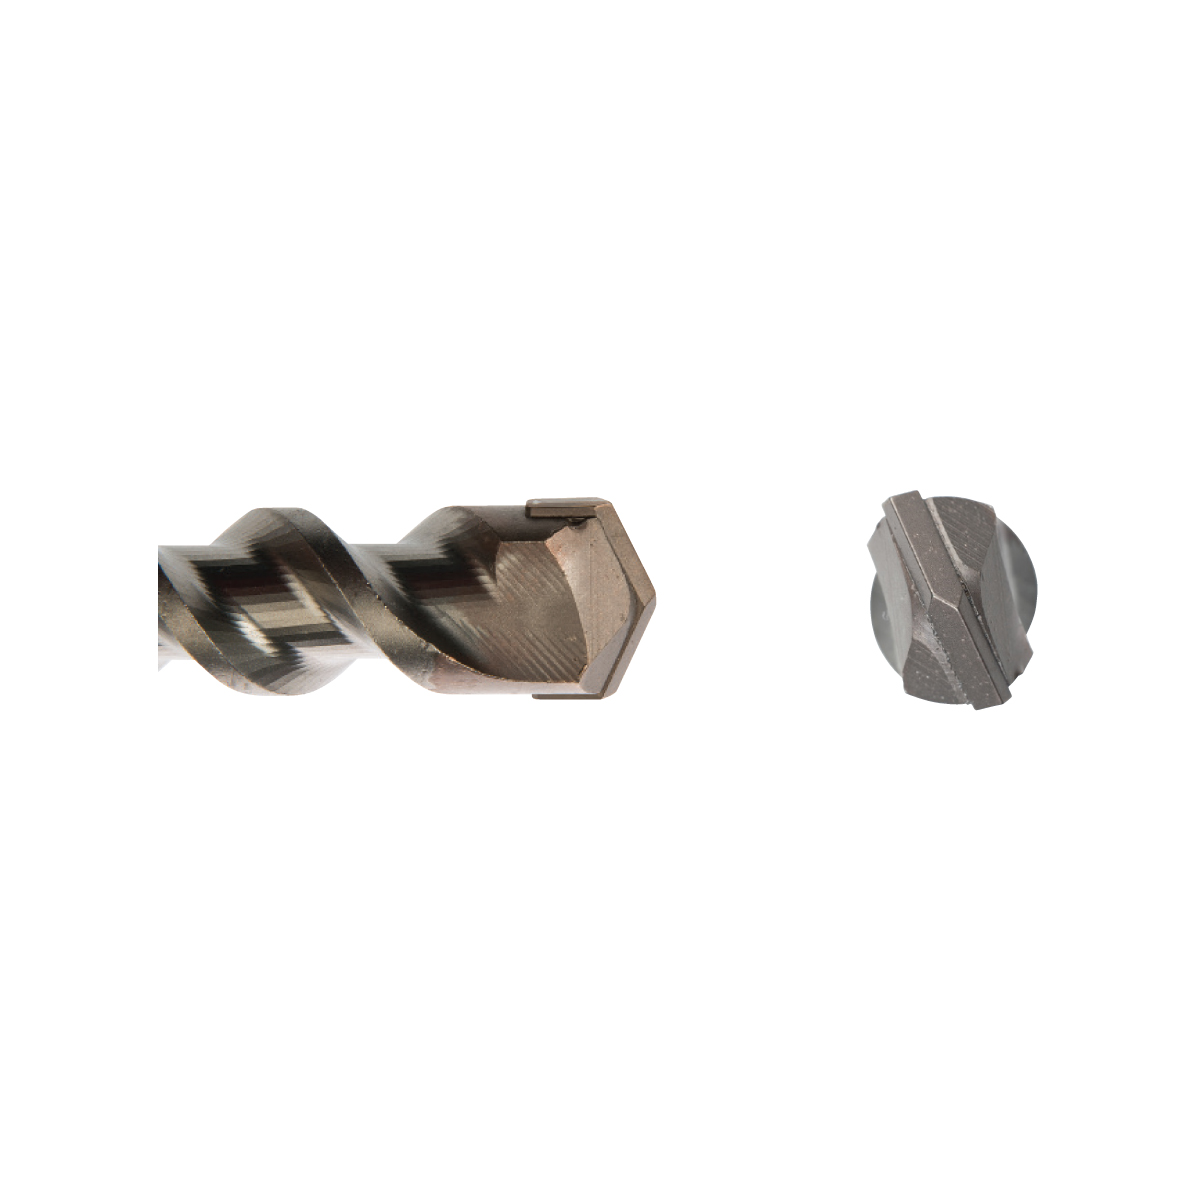 Qfds SDS Plus Hammer Drill Bits - Single Tip